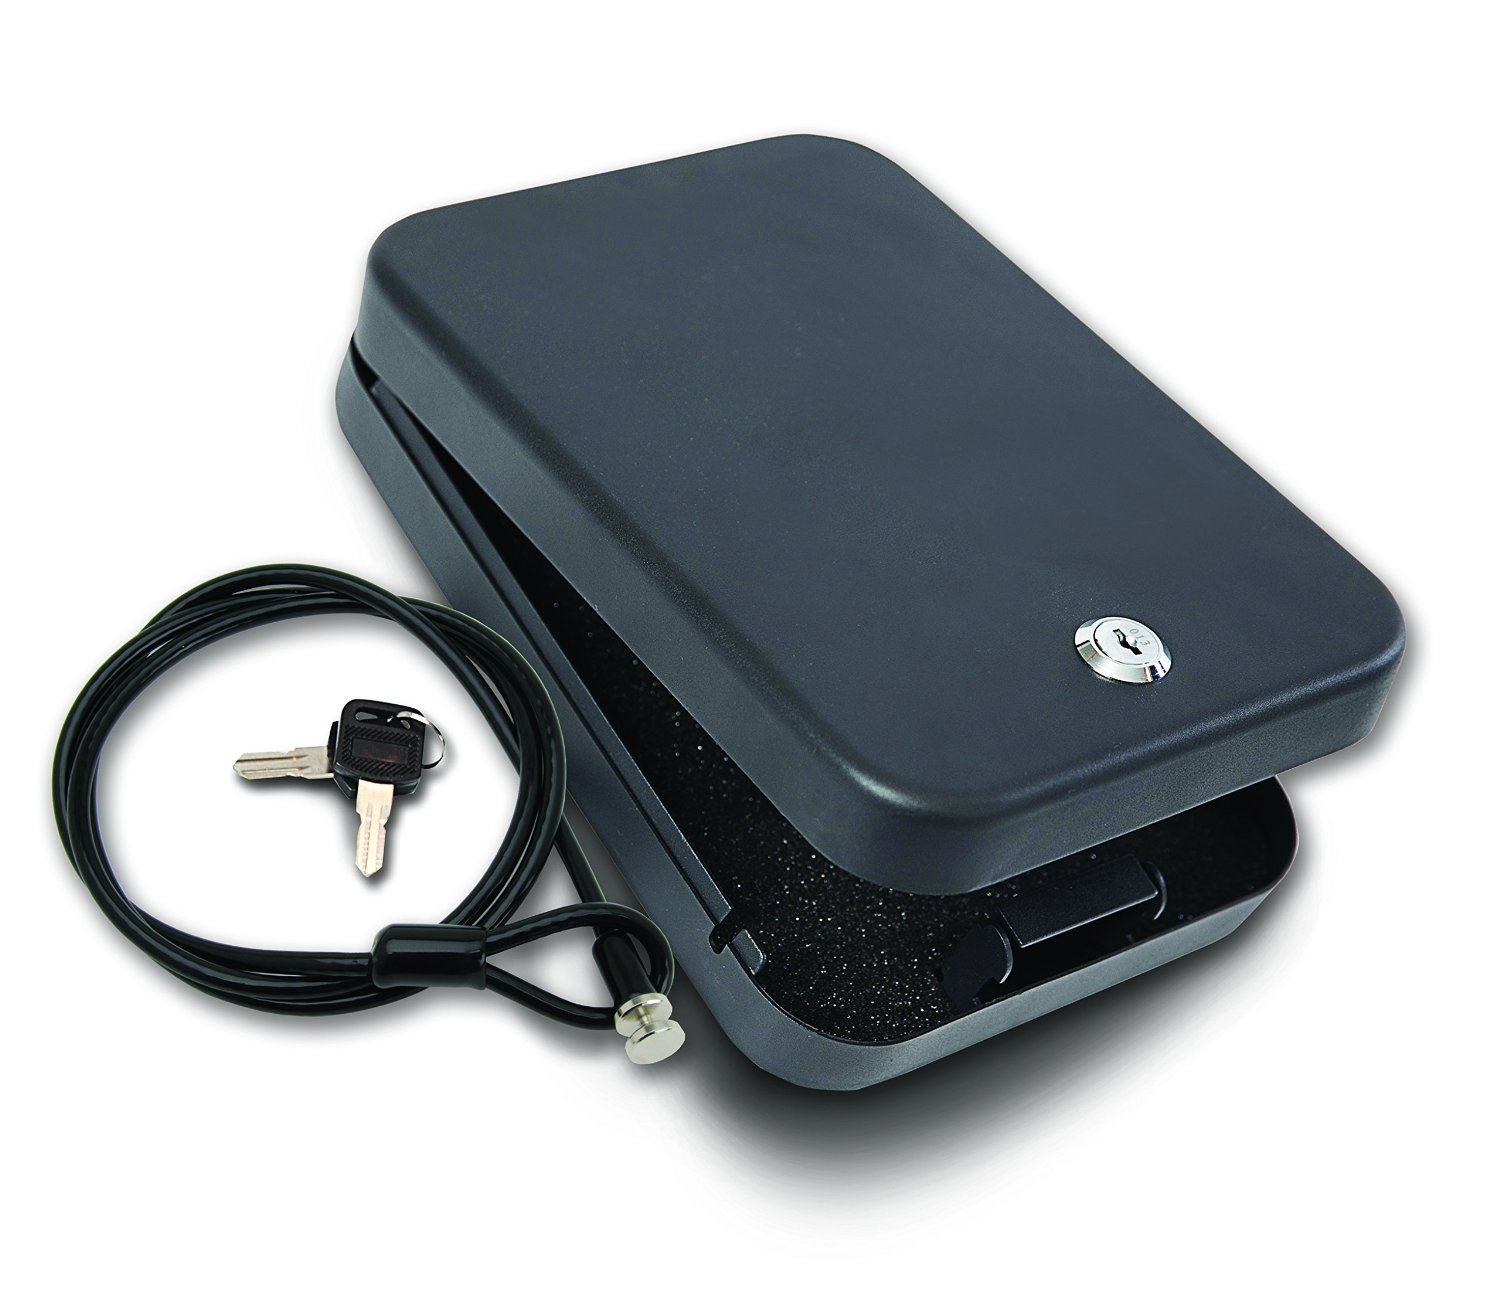 image showing the Bestop 42640-01 HighRock 4x4 Under Seat Lock Box for Wrangler JK.